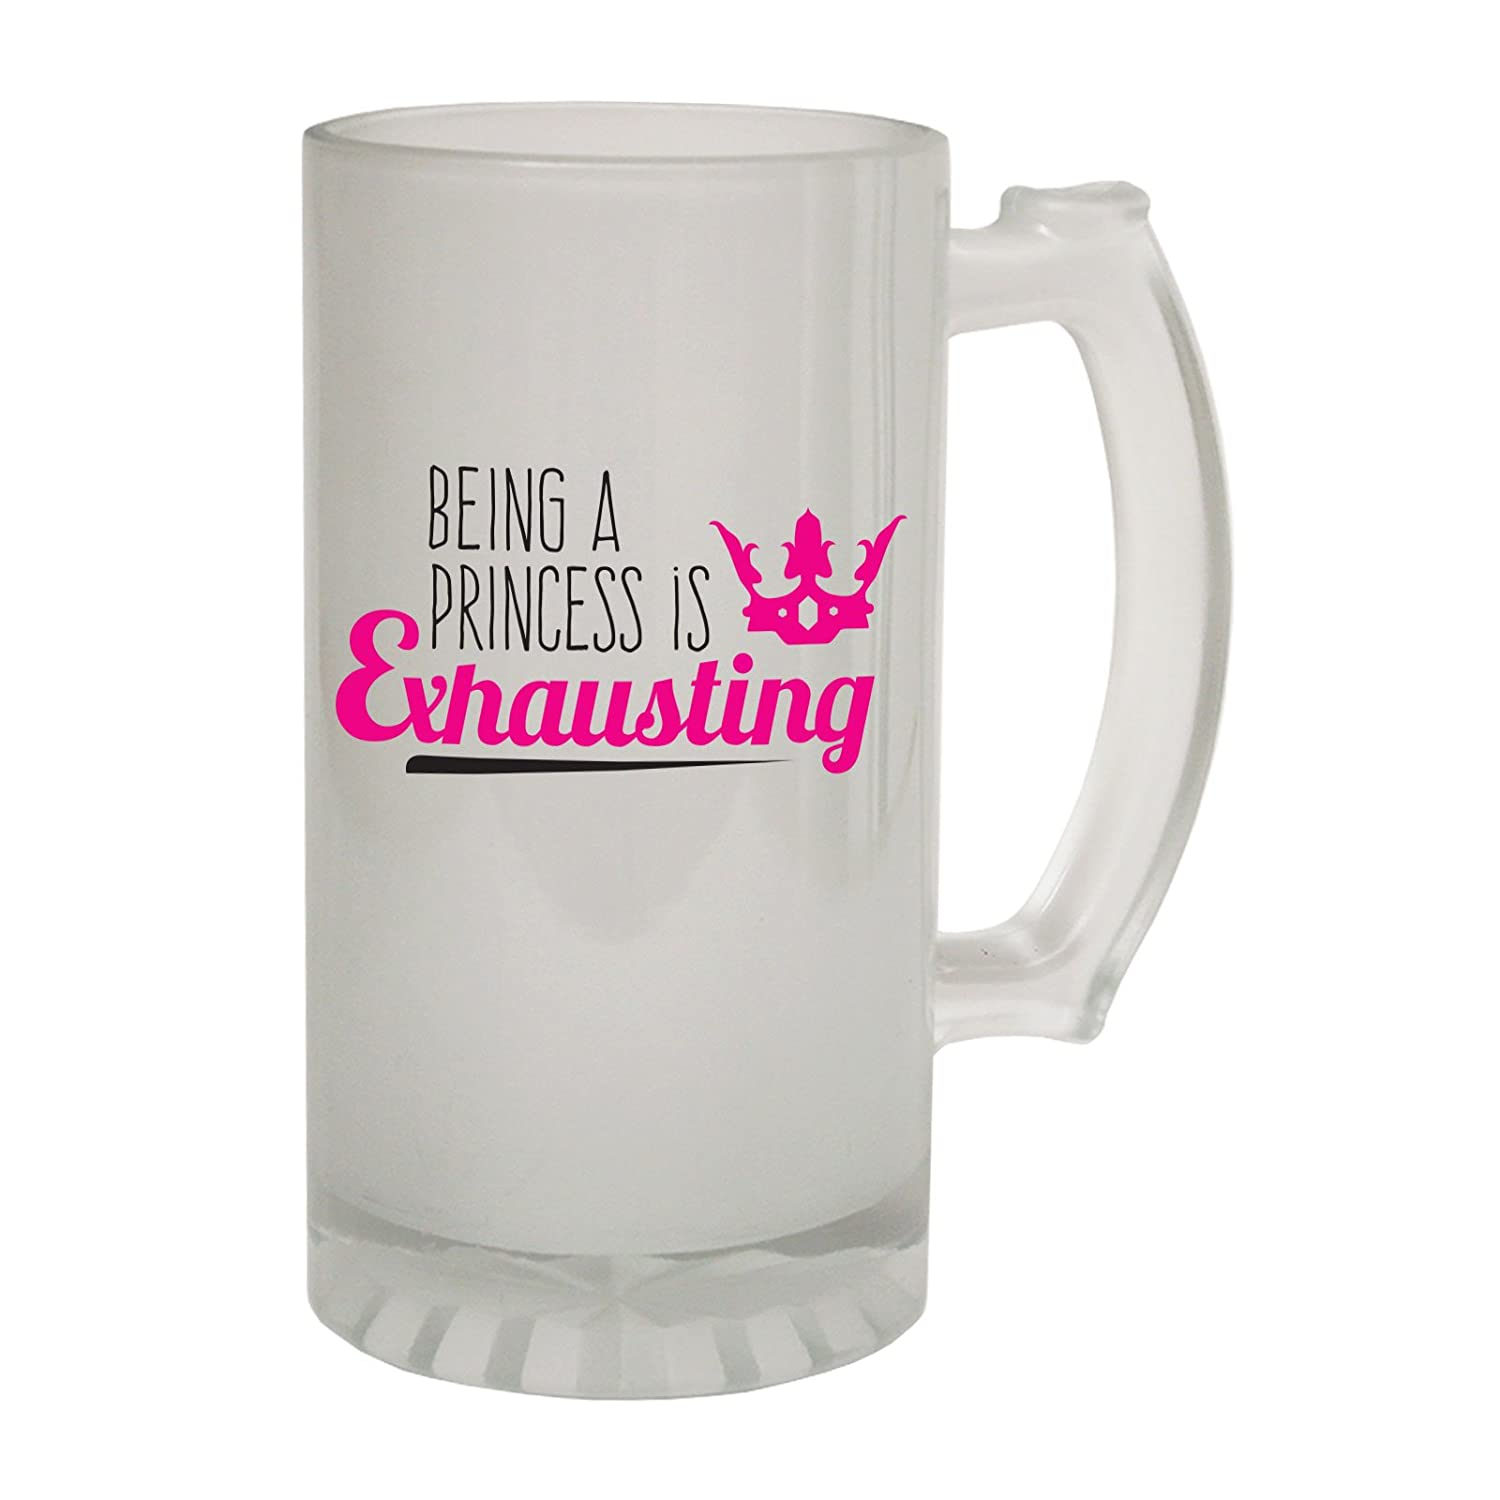 123t Frosted Glass Beer Stein - Being Princess Exhausting Her - Funny Novelty Birthday